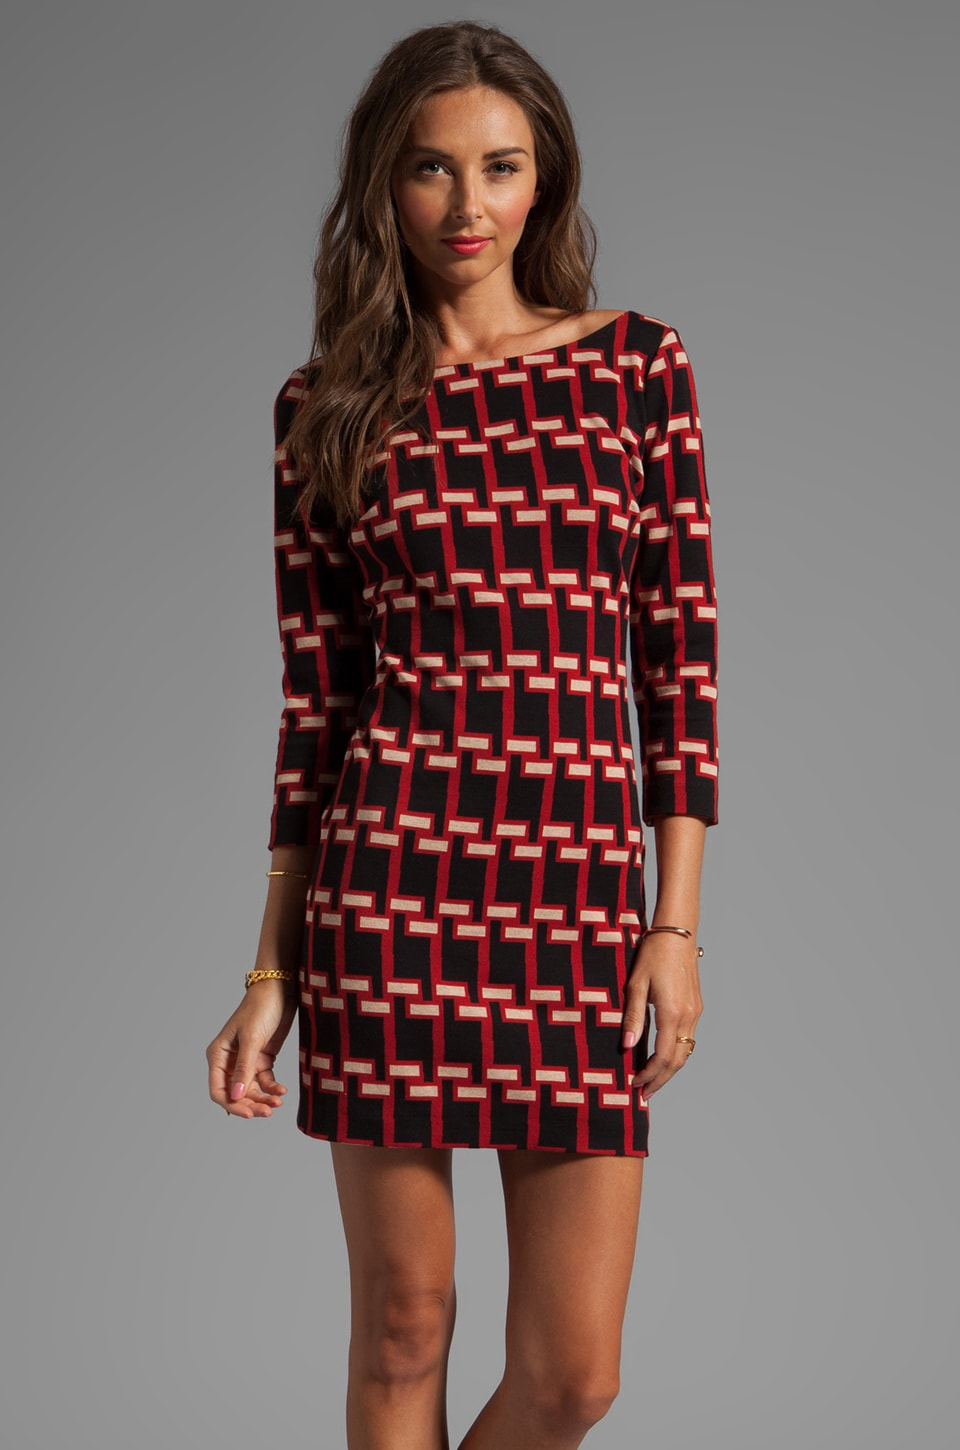 Plenty by Tracy Reese Geo Houndstooth Jacquard V-back Shift Dress in Black/Ruby Rust